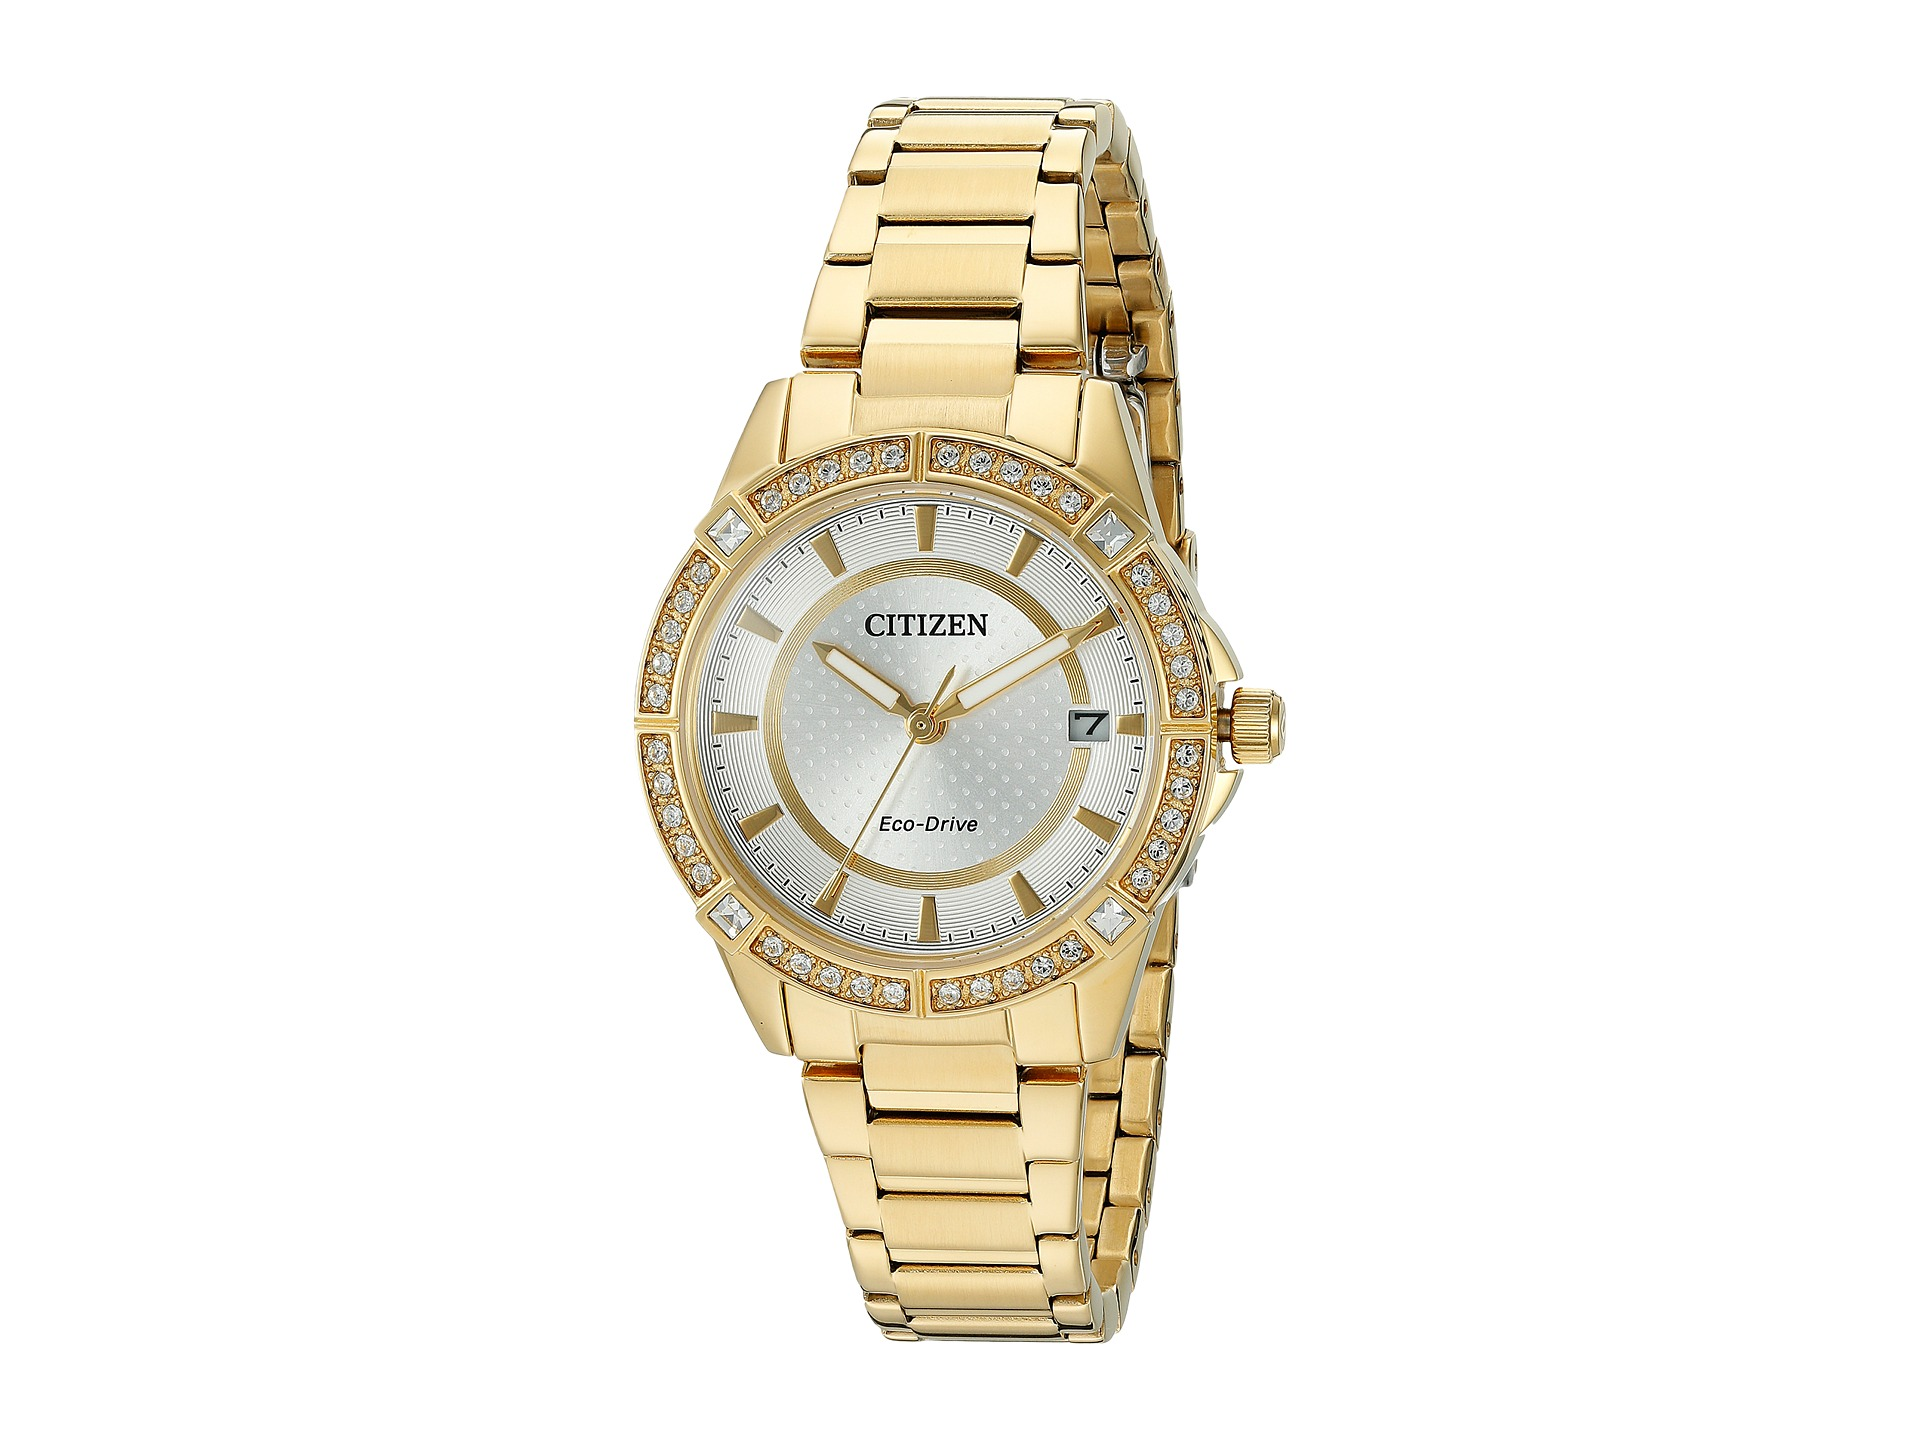 citizen watches fe6062 56a drive from citizen eco drive